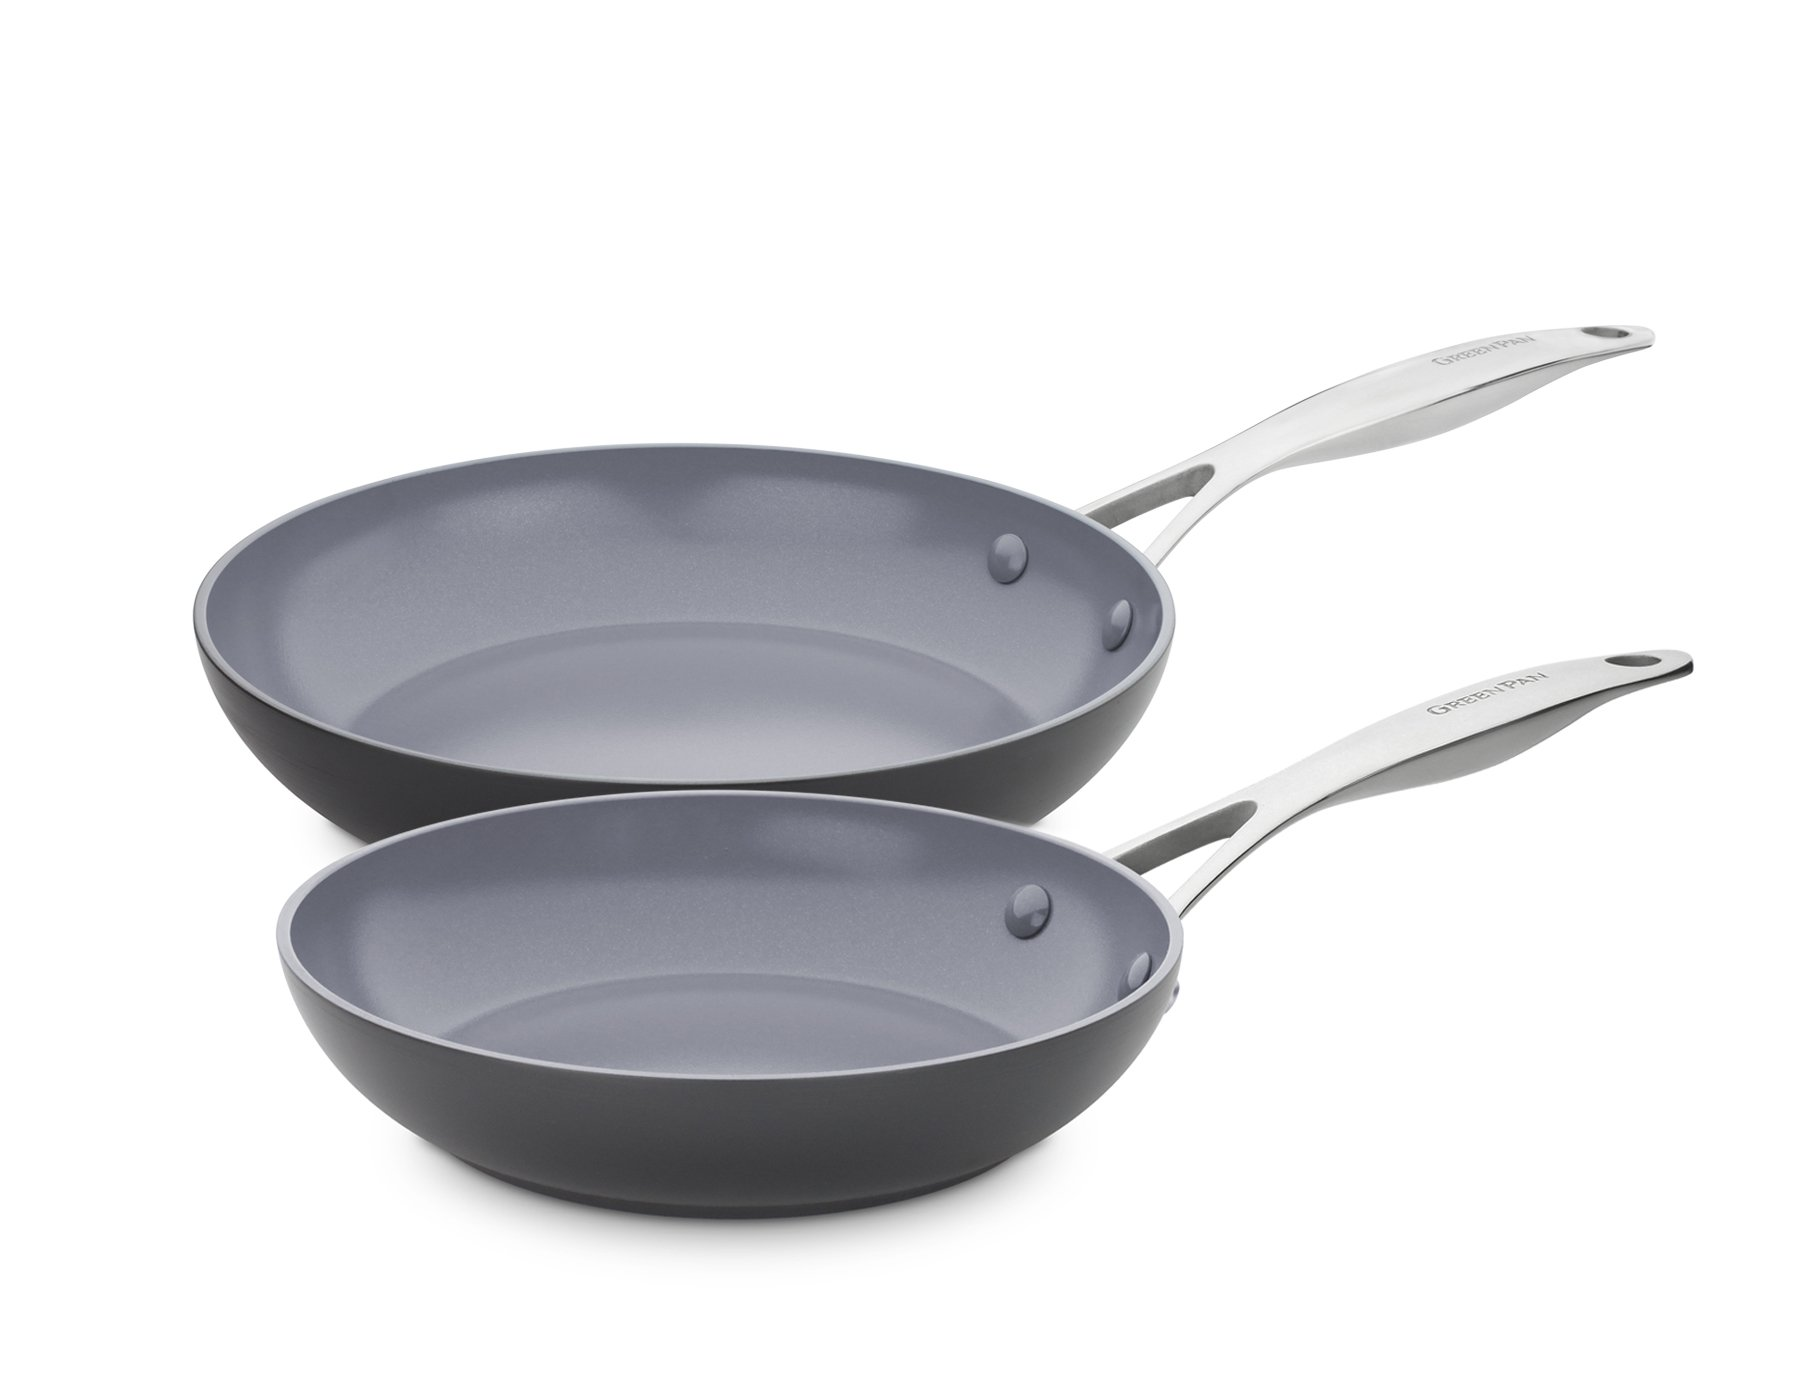 GreenPan CC000672-001 Valencia Pro Hard Anodized 100% Toxin-Free Healthy Ceramic Nonstick Metal Utensil/Dishwasher/Oven Safe 8 & 10-Inch Frypan Set, 2-Piece, Grey